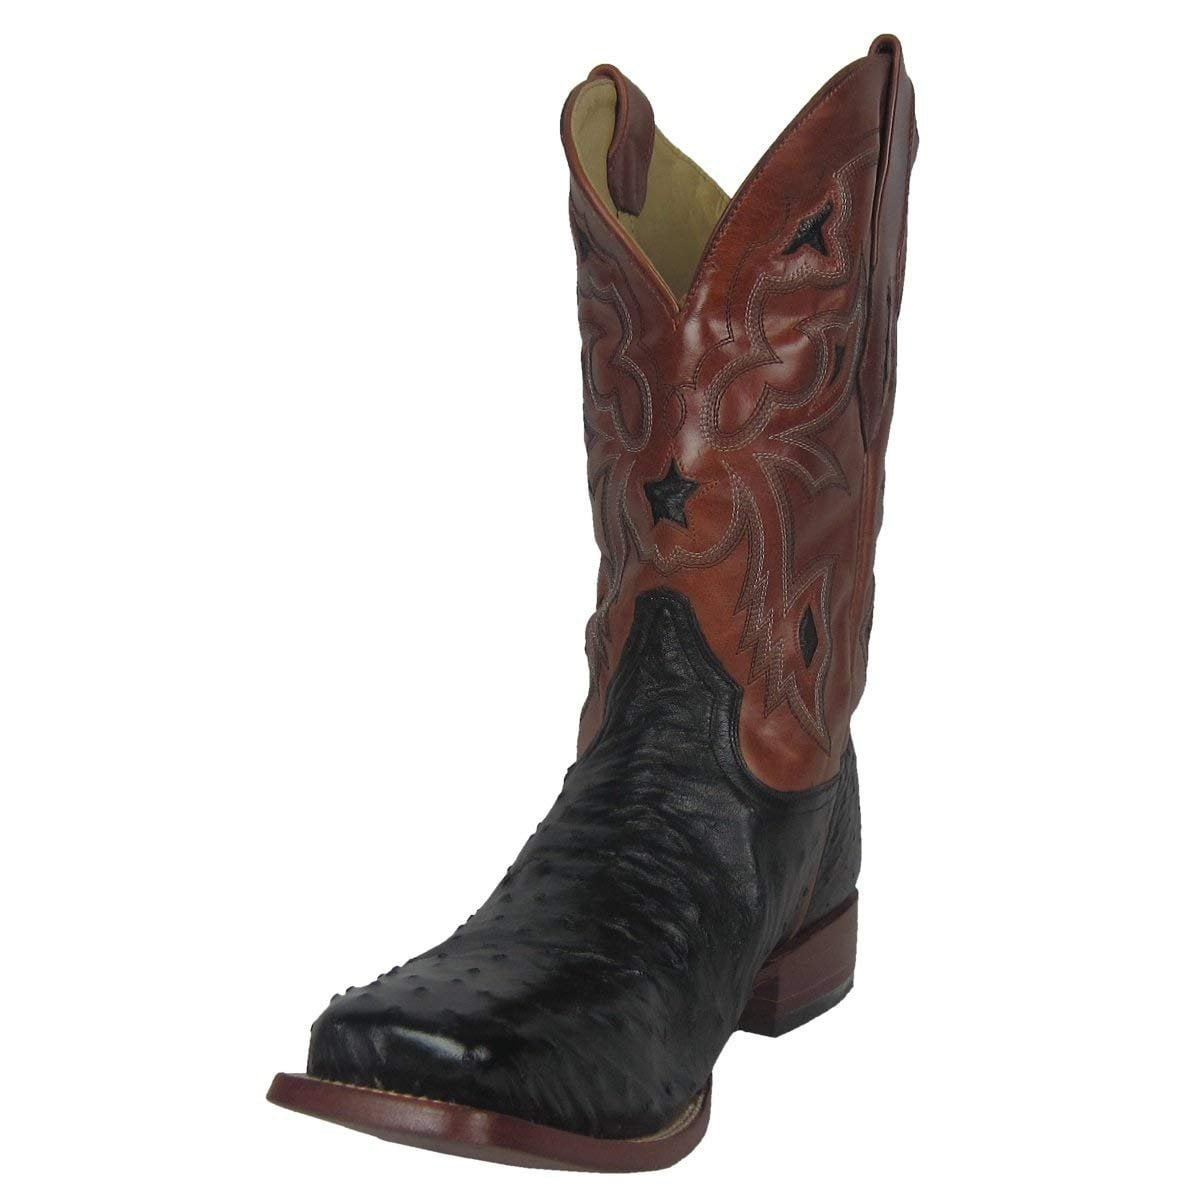 CORRAL Mens Cango Tobacco Full Quill Ostrich with Black Shoulder Counter Square Toe Cowboy Boots A2633